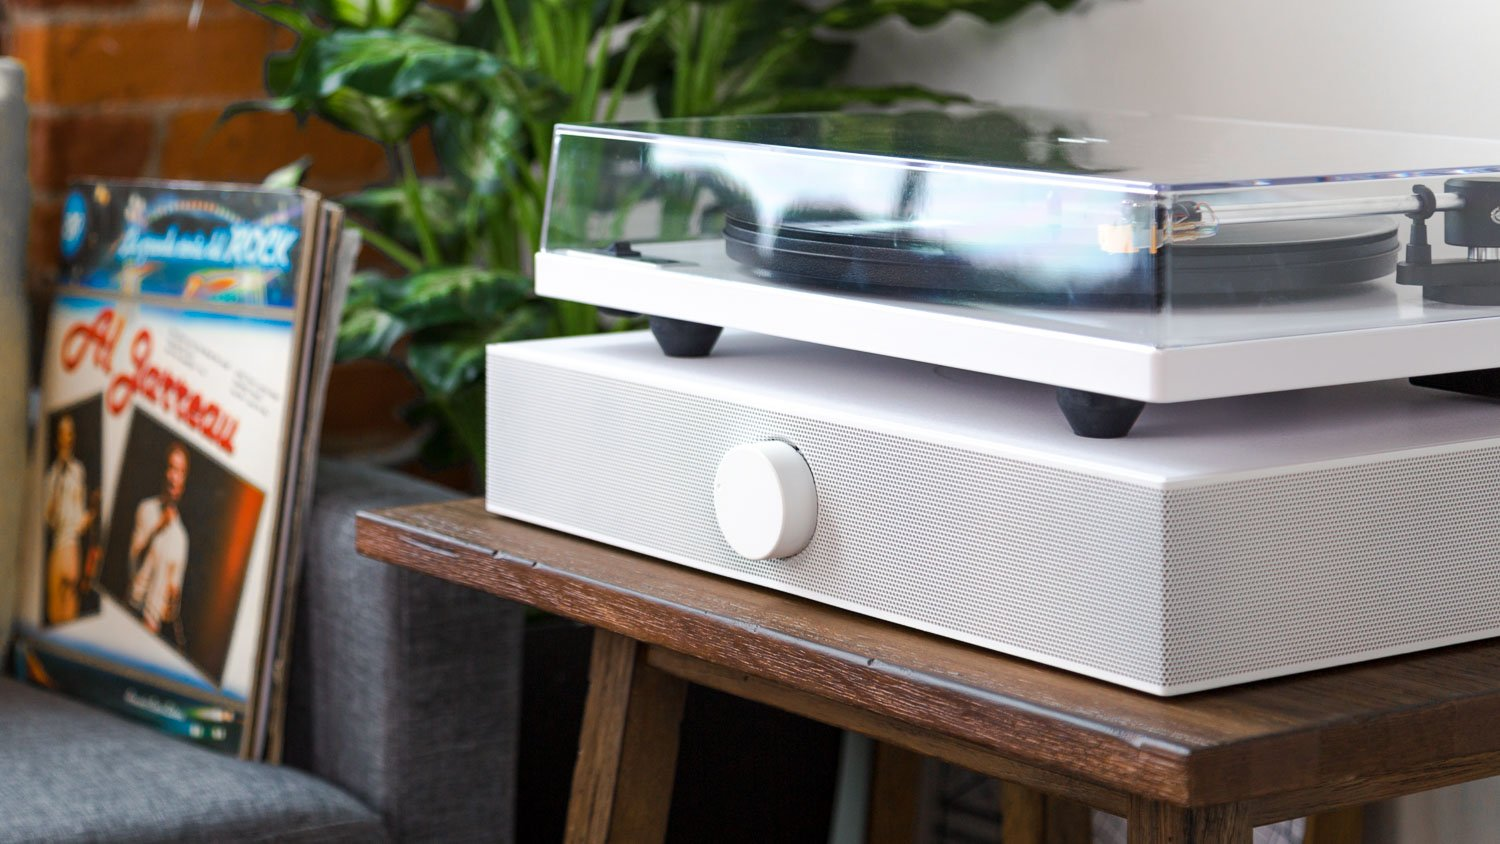 Spinbase gives your turntable somewhere to sit